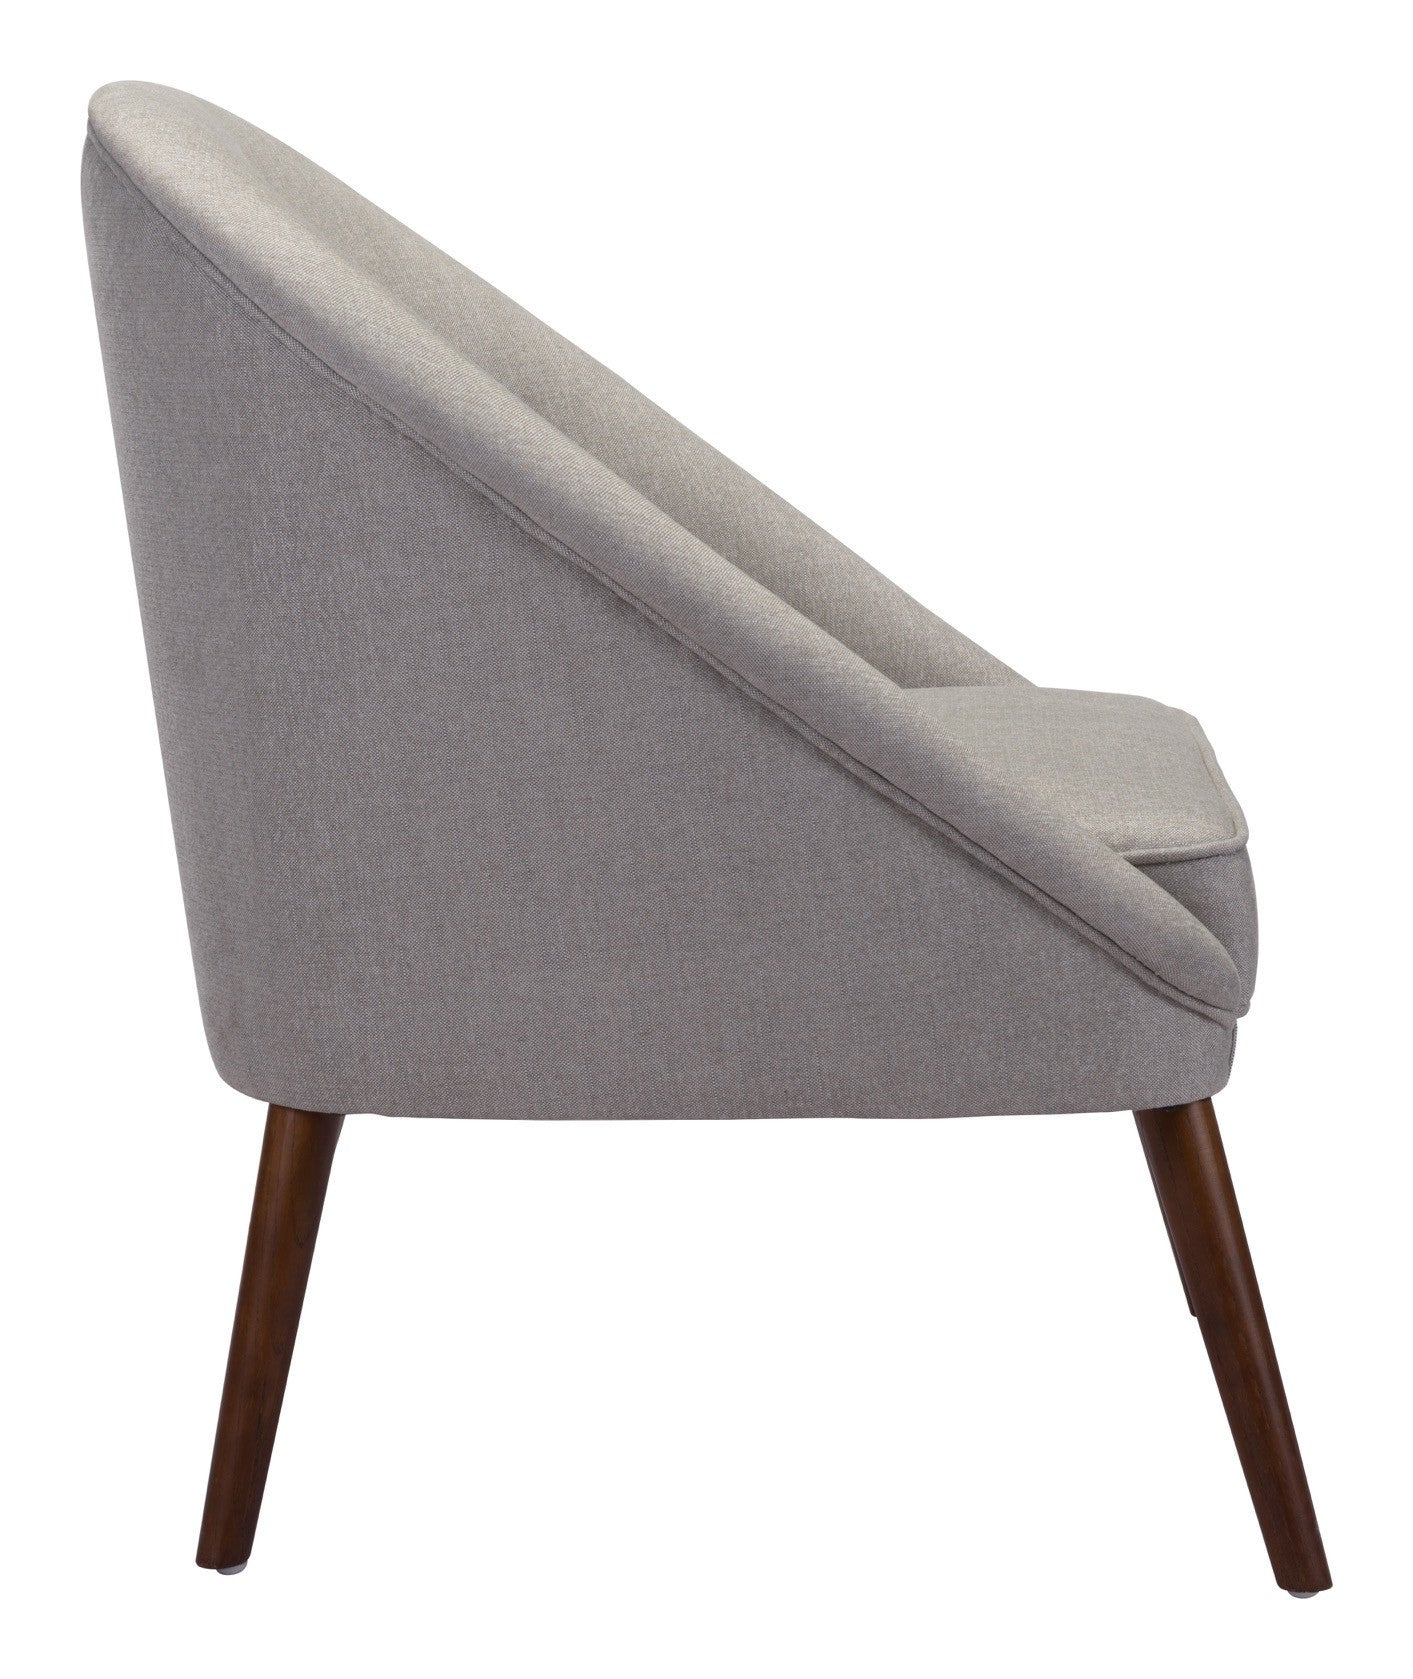 Carter accent chair in light gray linen blend fabric on wood legs accent chairs